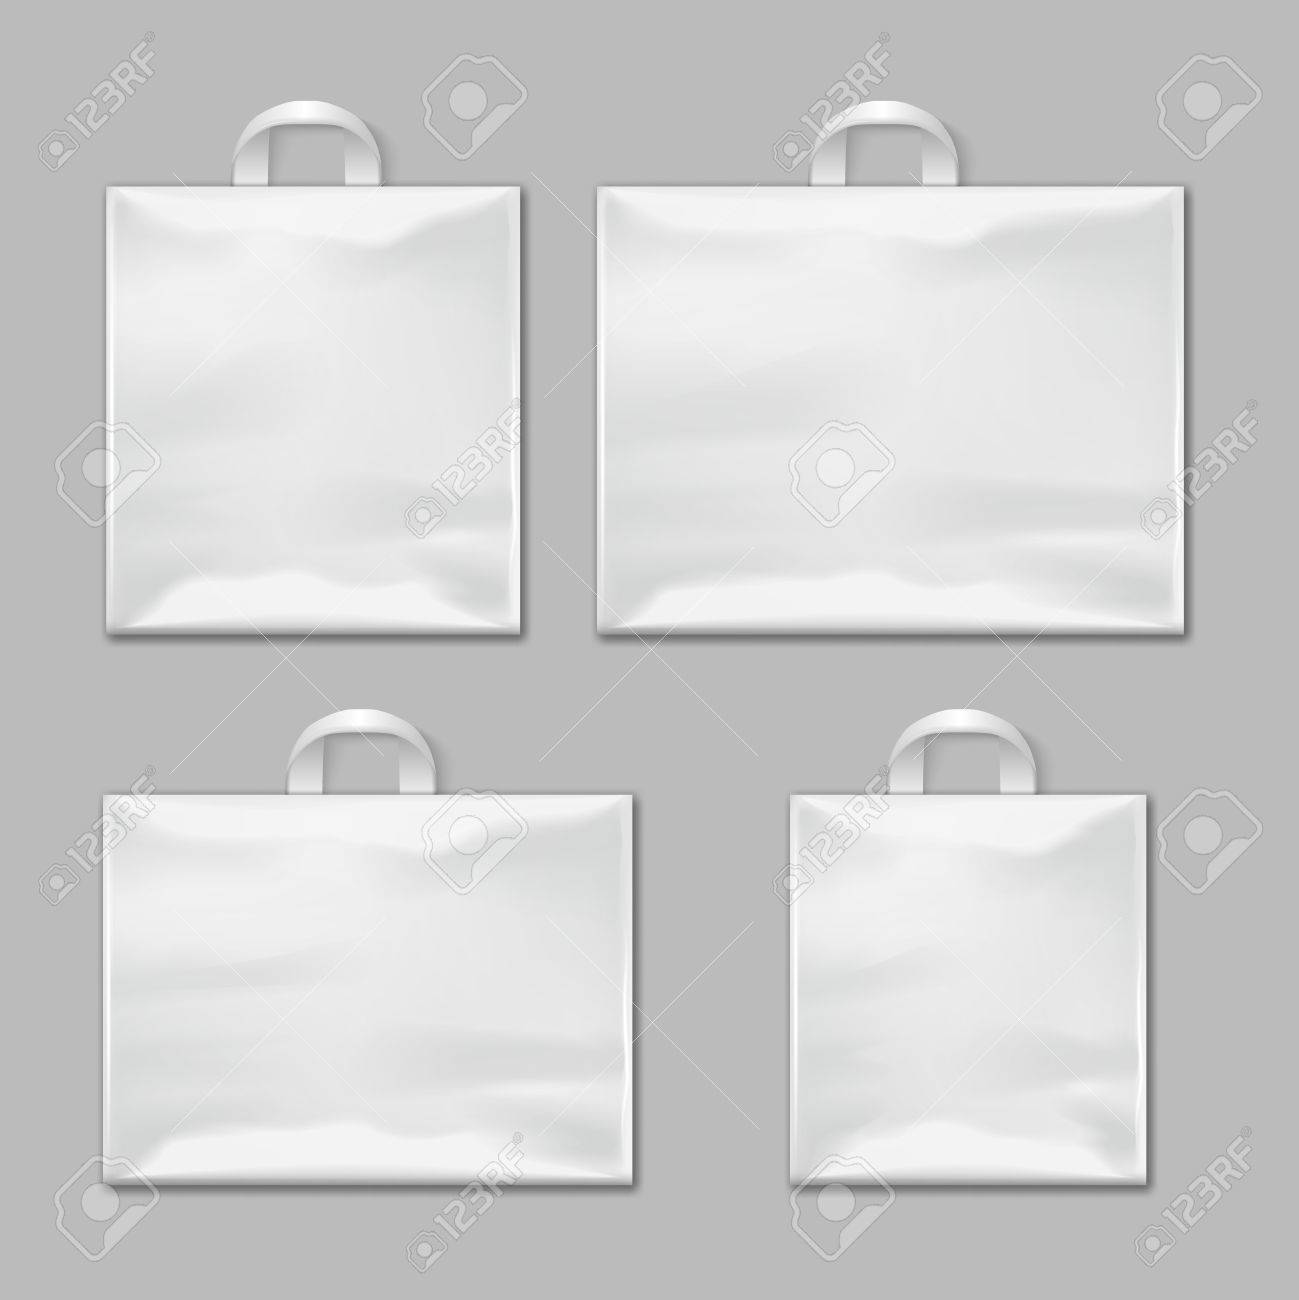 White Empty Reusable Plastic Shopping Bags With Handles Vector ...